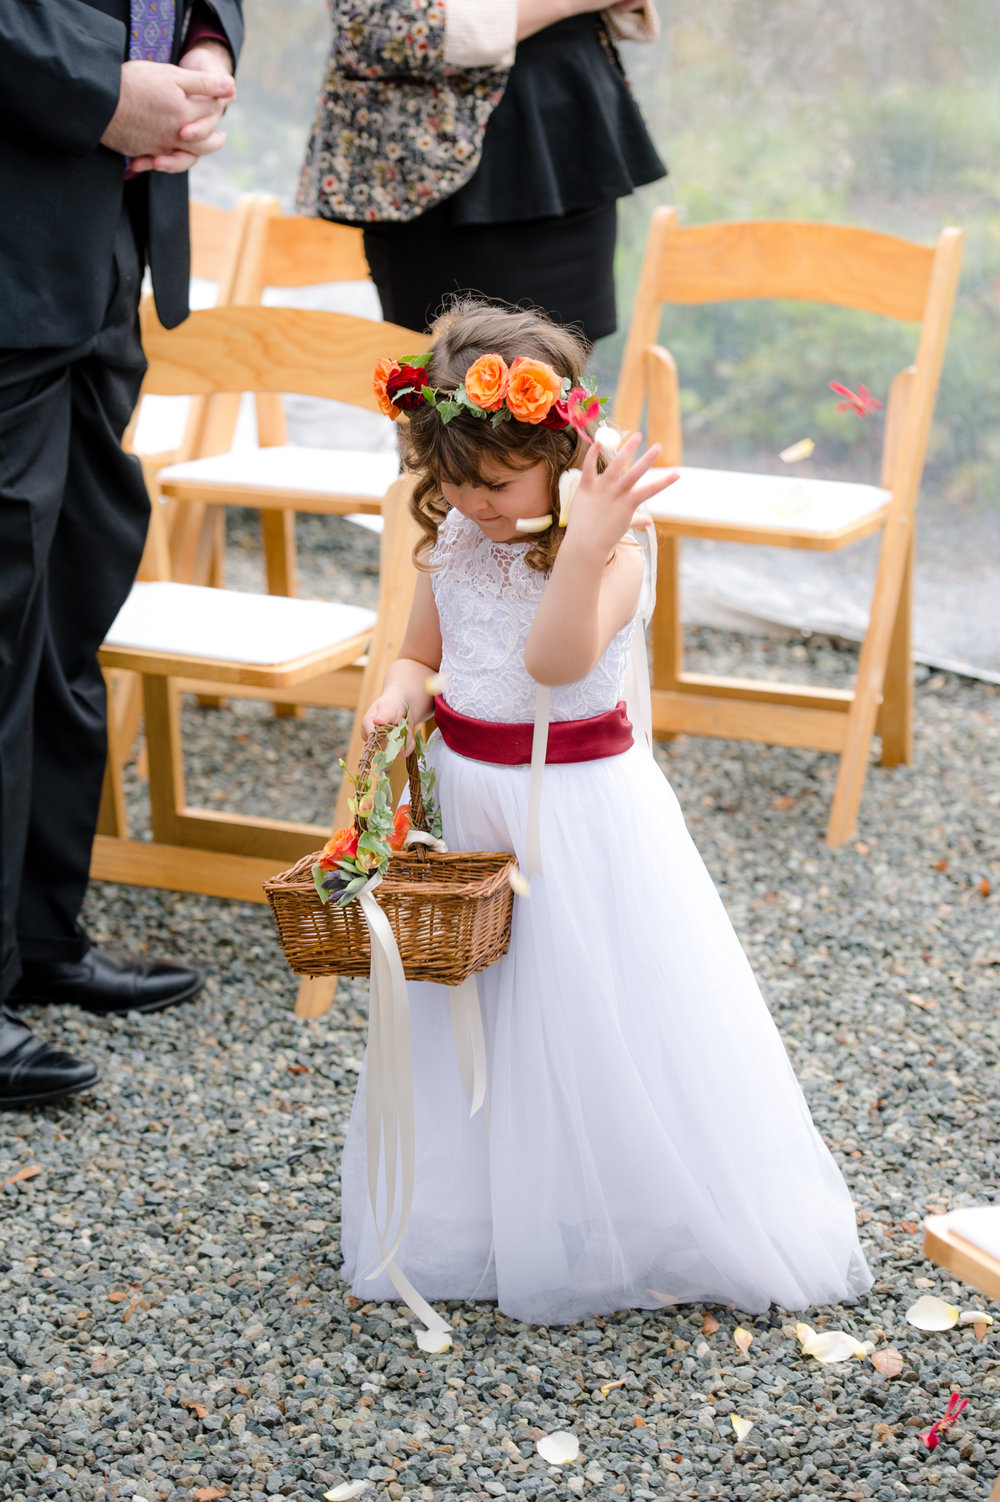 Rini + Matt Wedding_Tree Farm Wedding_Wedding at the Lodge_Kelsey Lane Photography_Winter Wedding_flower girl